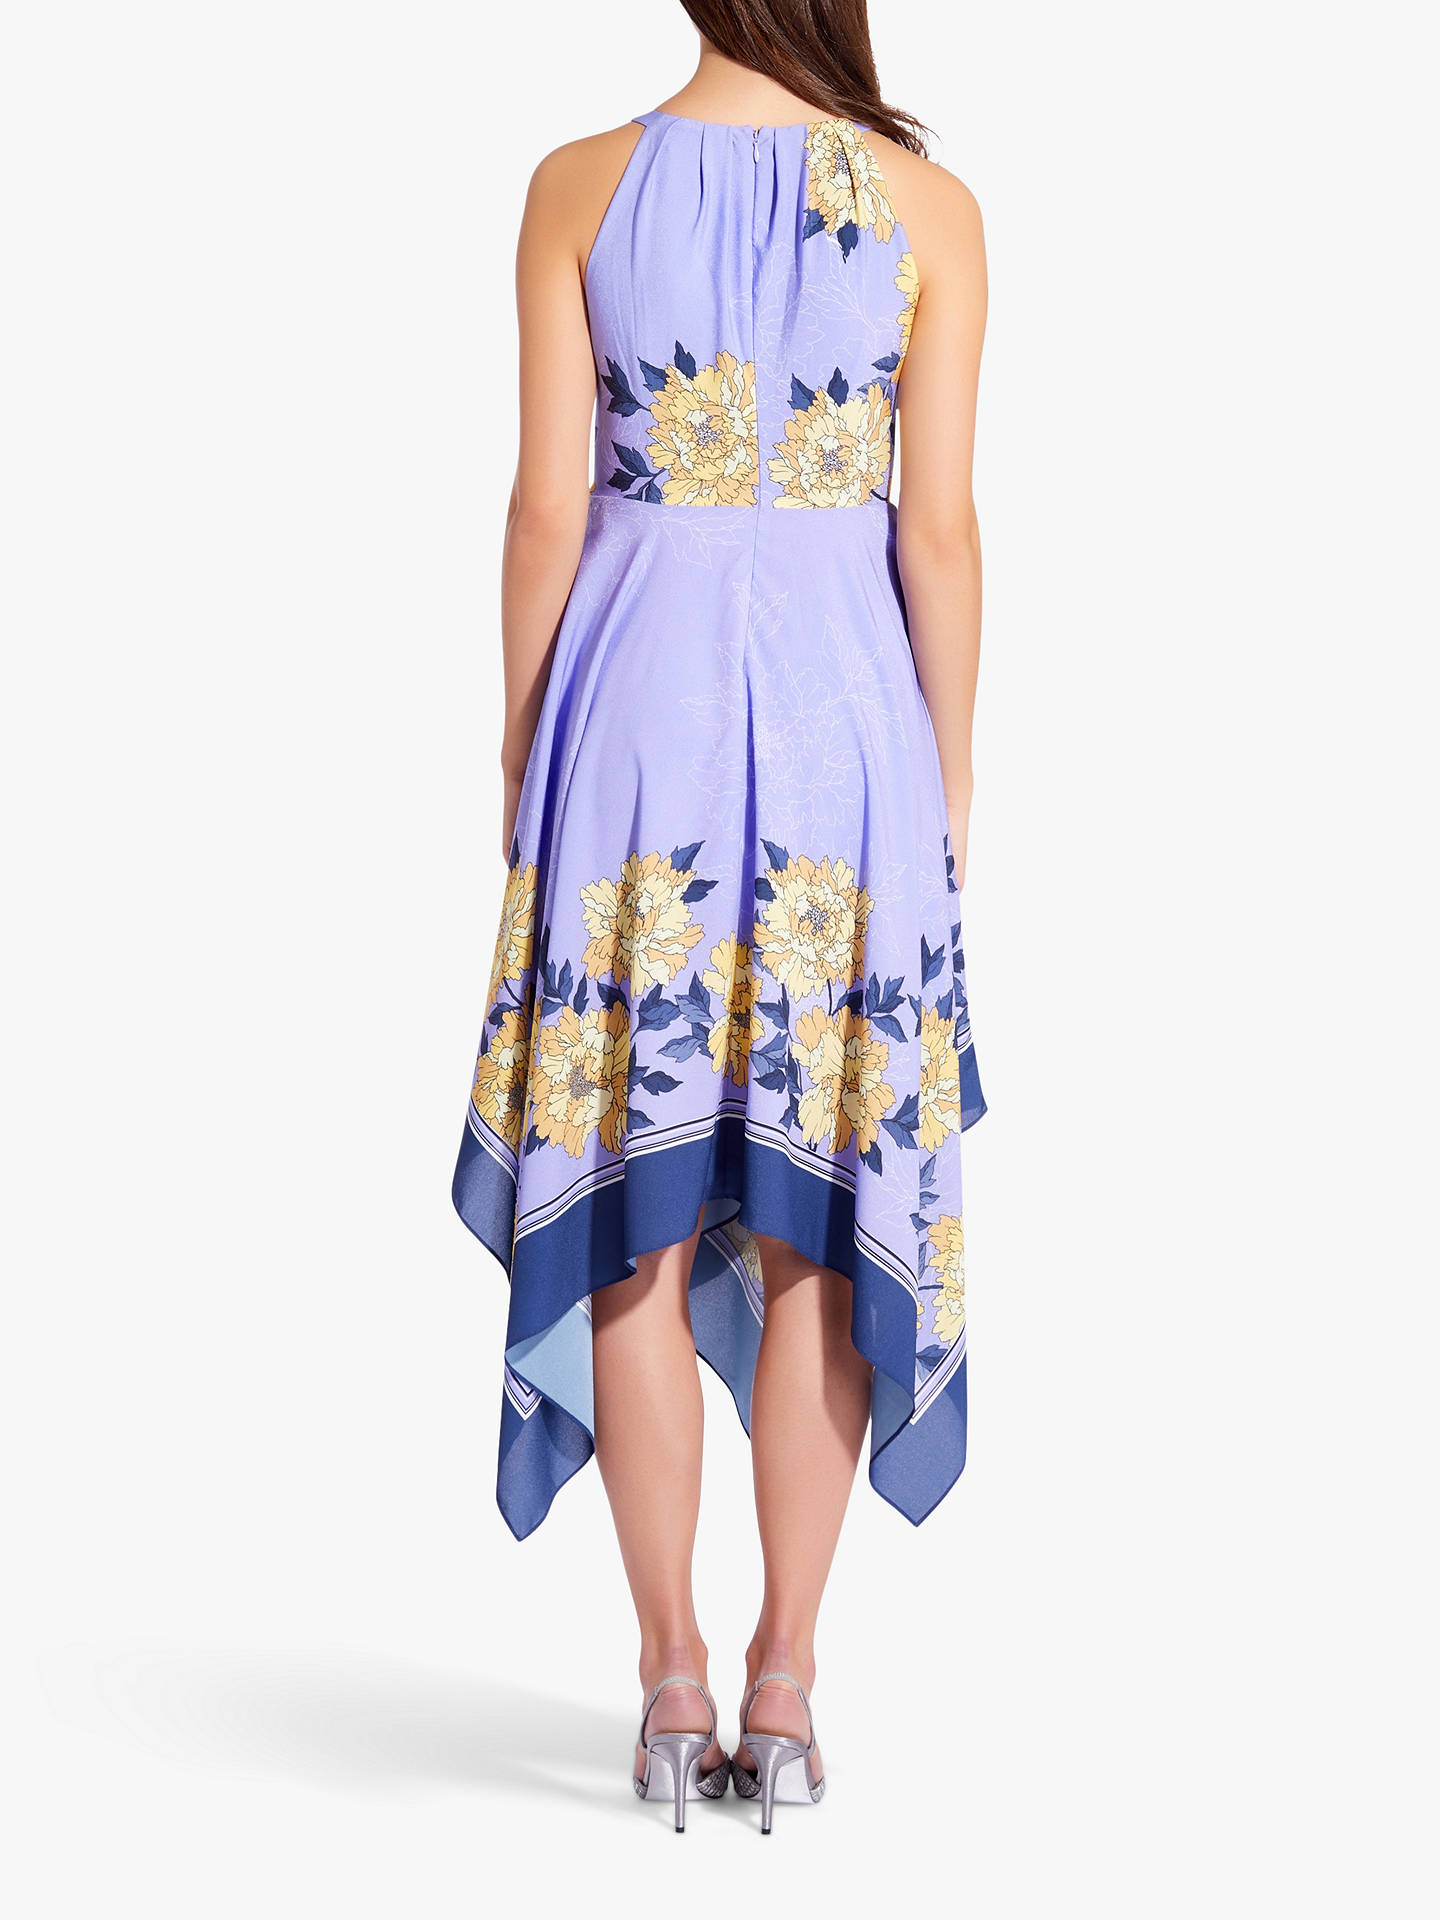 Buy Adrianna Papell Bliss Blooms Dress, Yellow/Multi, 14 Online at johnlewis.com